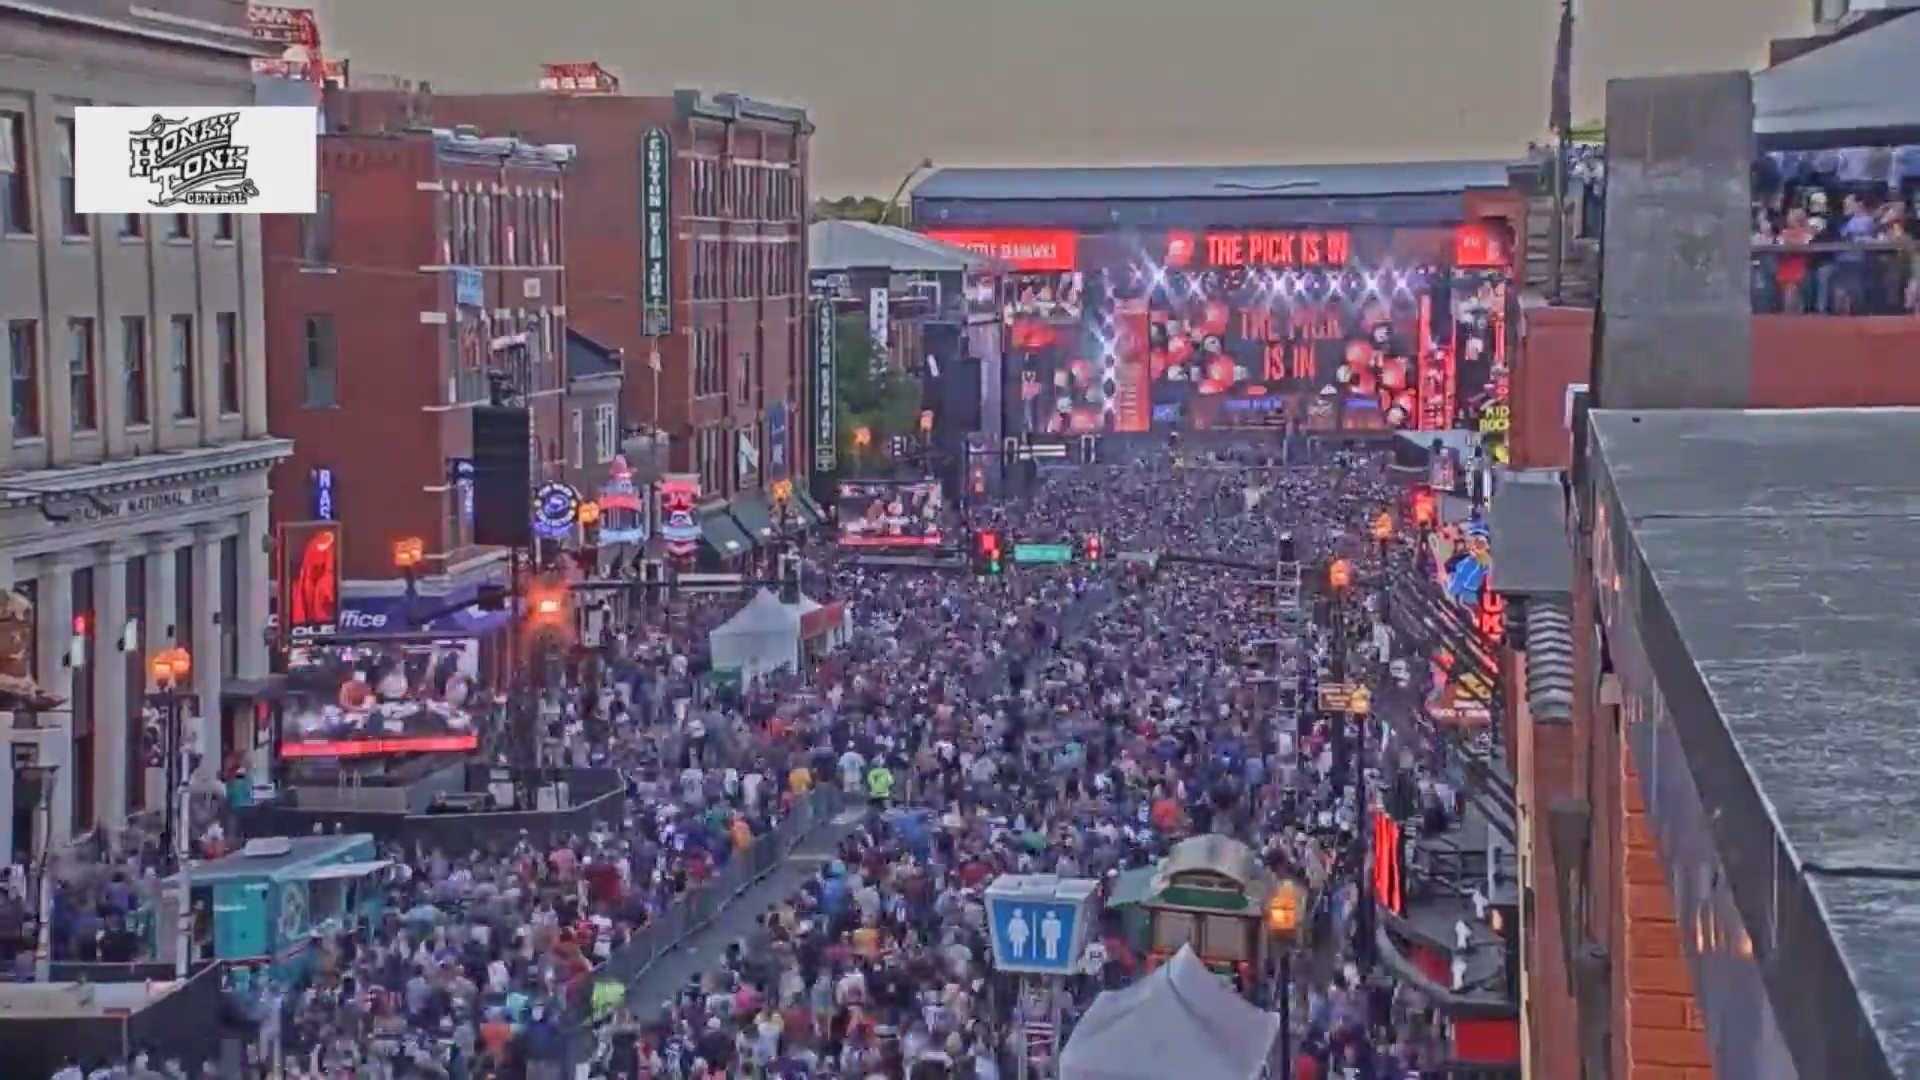 NFL Draft Round 2 timelapse 1 84646094 ver1.0 - How To Get Free Tickets For Nfl Draft In Nashville